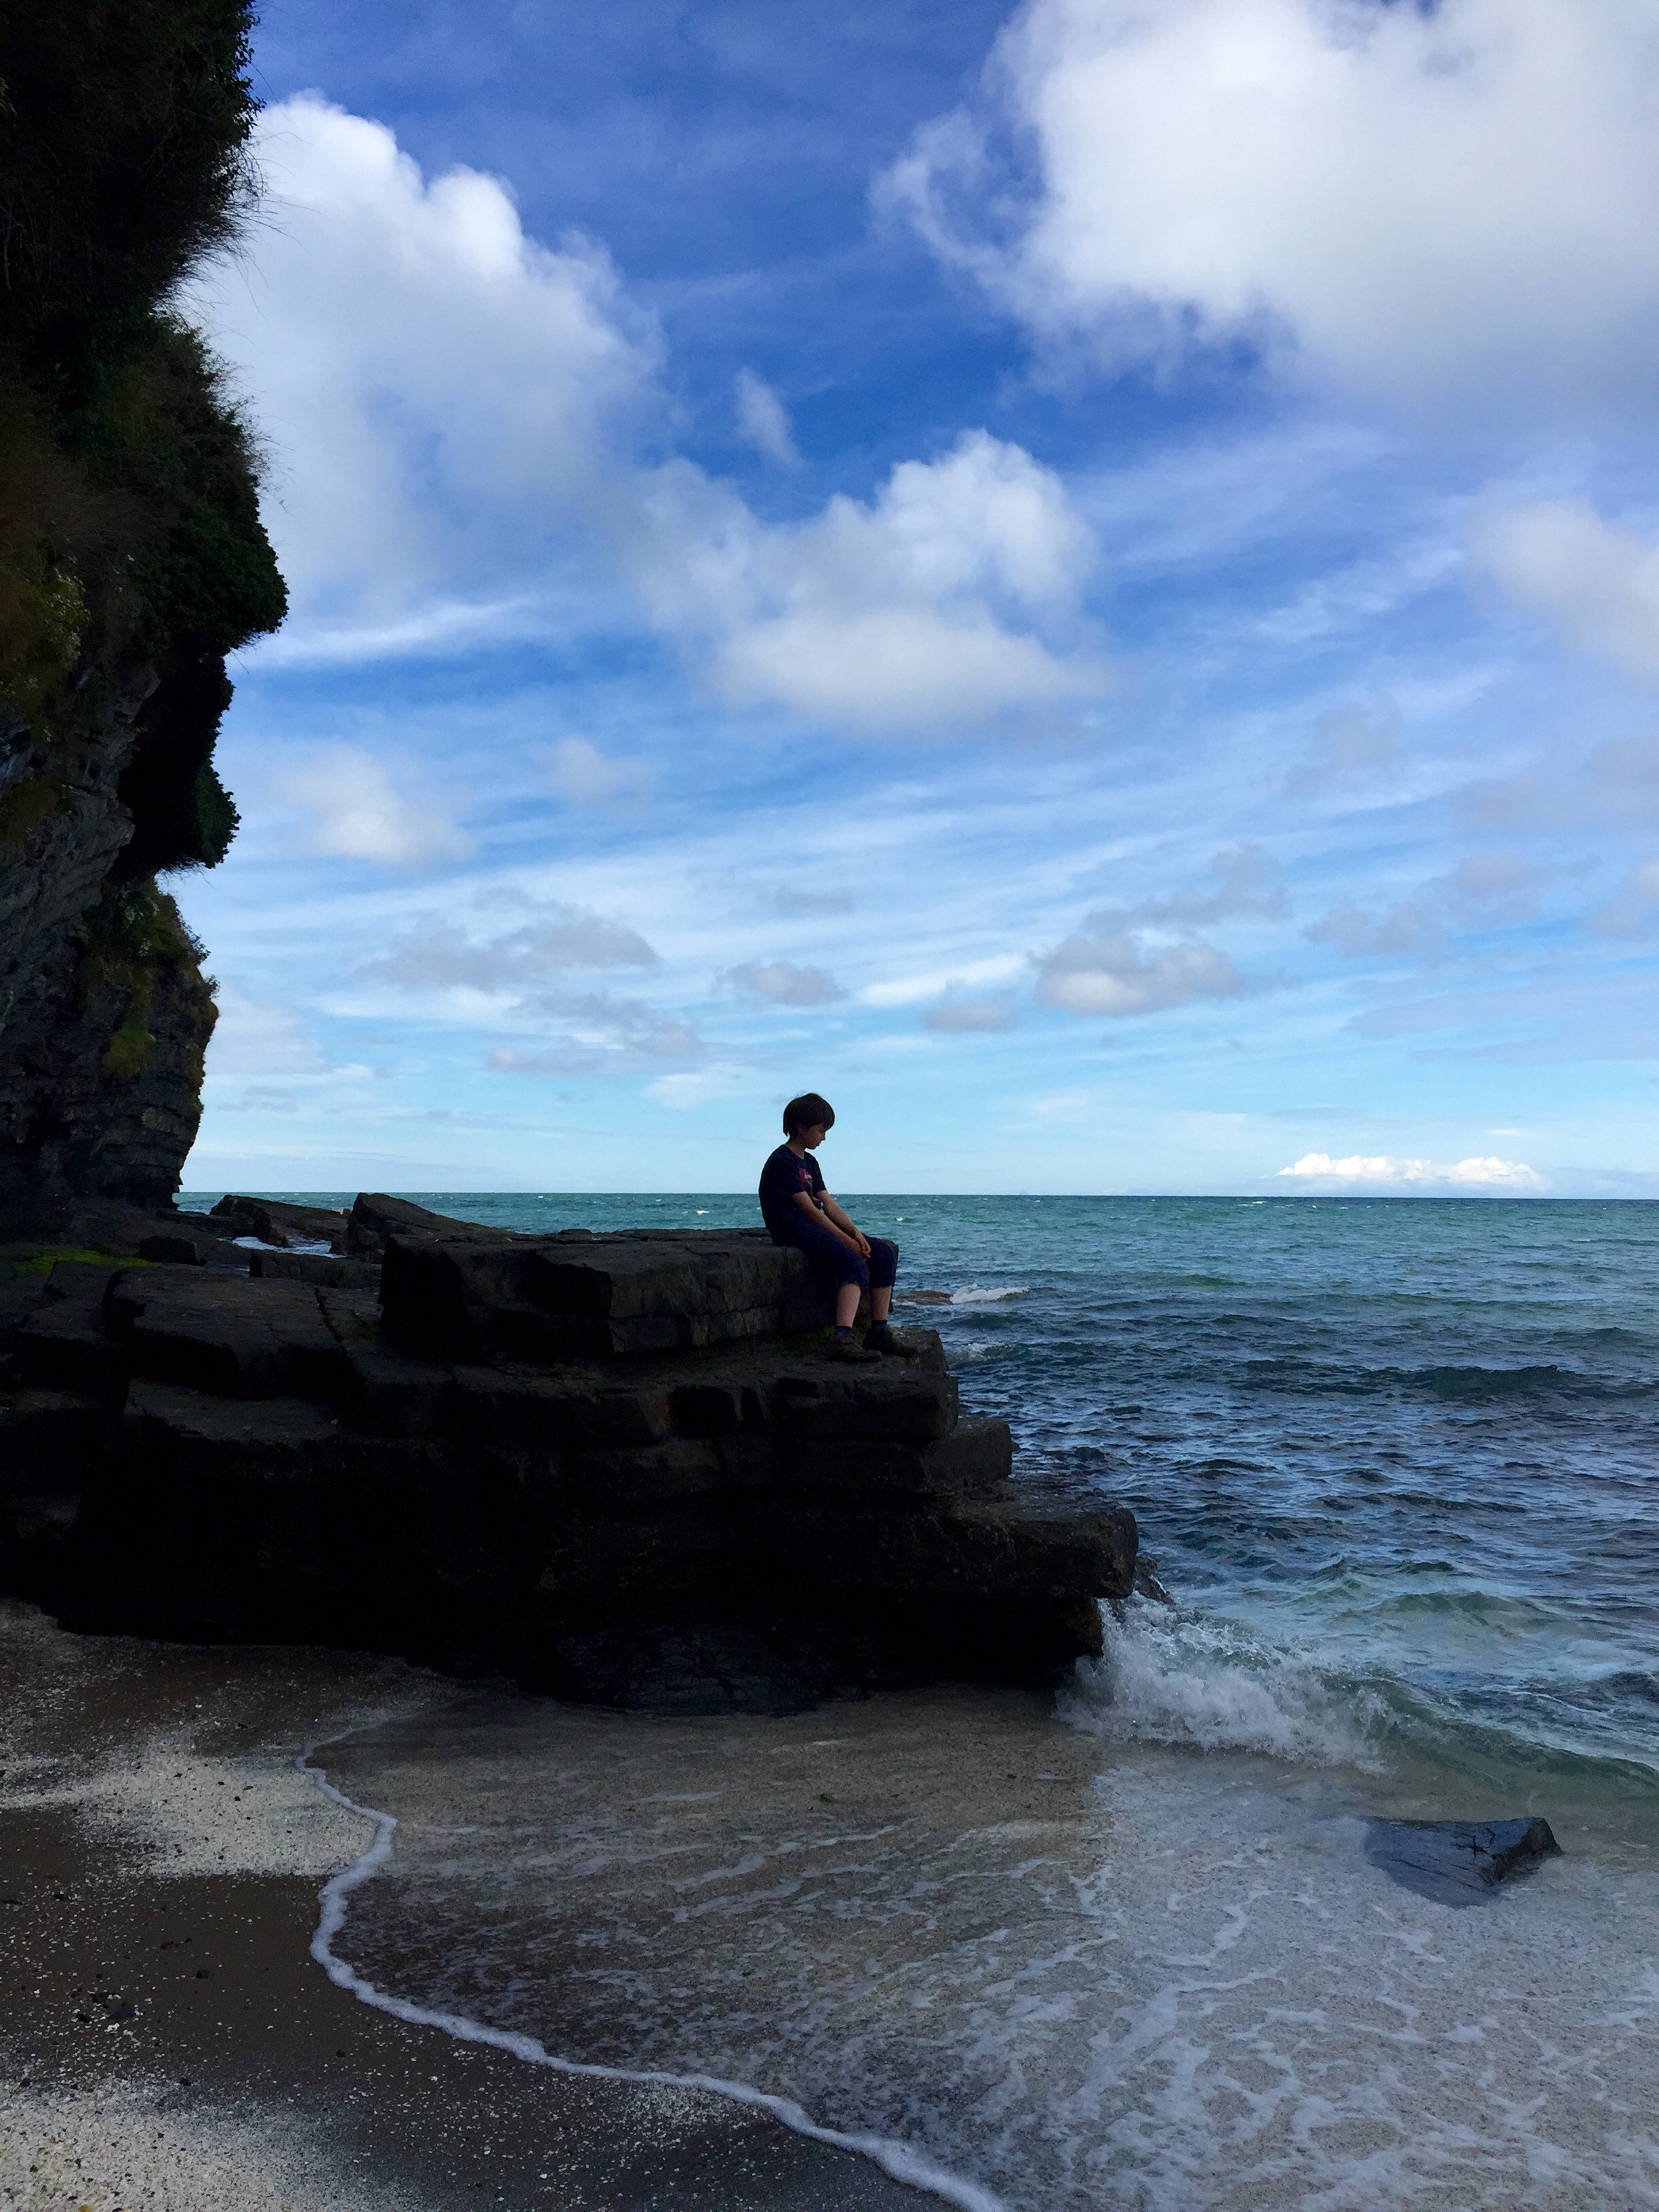 Children love being by cliffs and water - but should policy be telling parents when to let them explore such places alone?